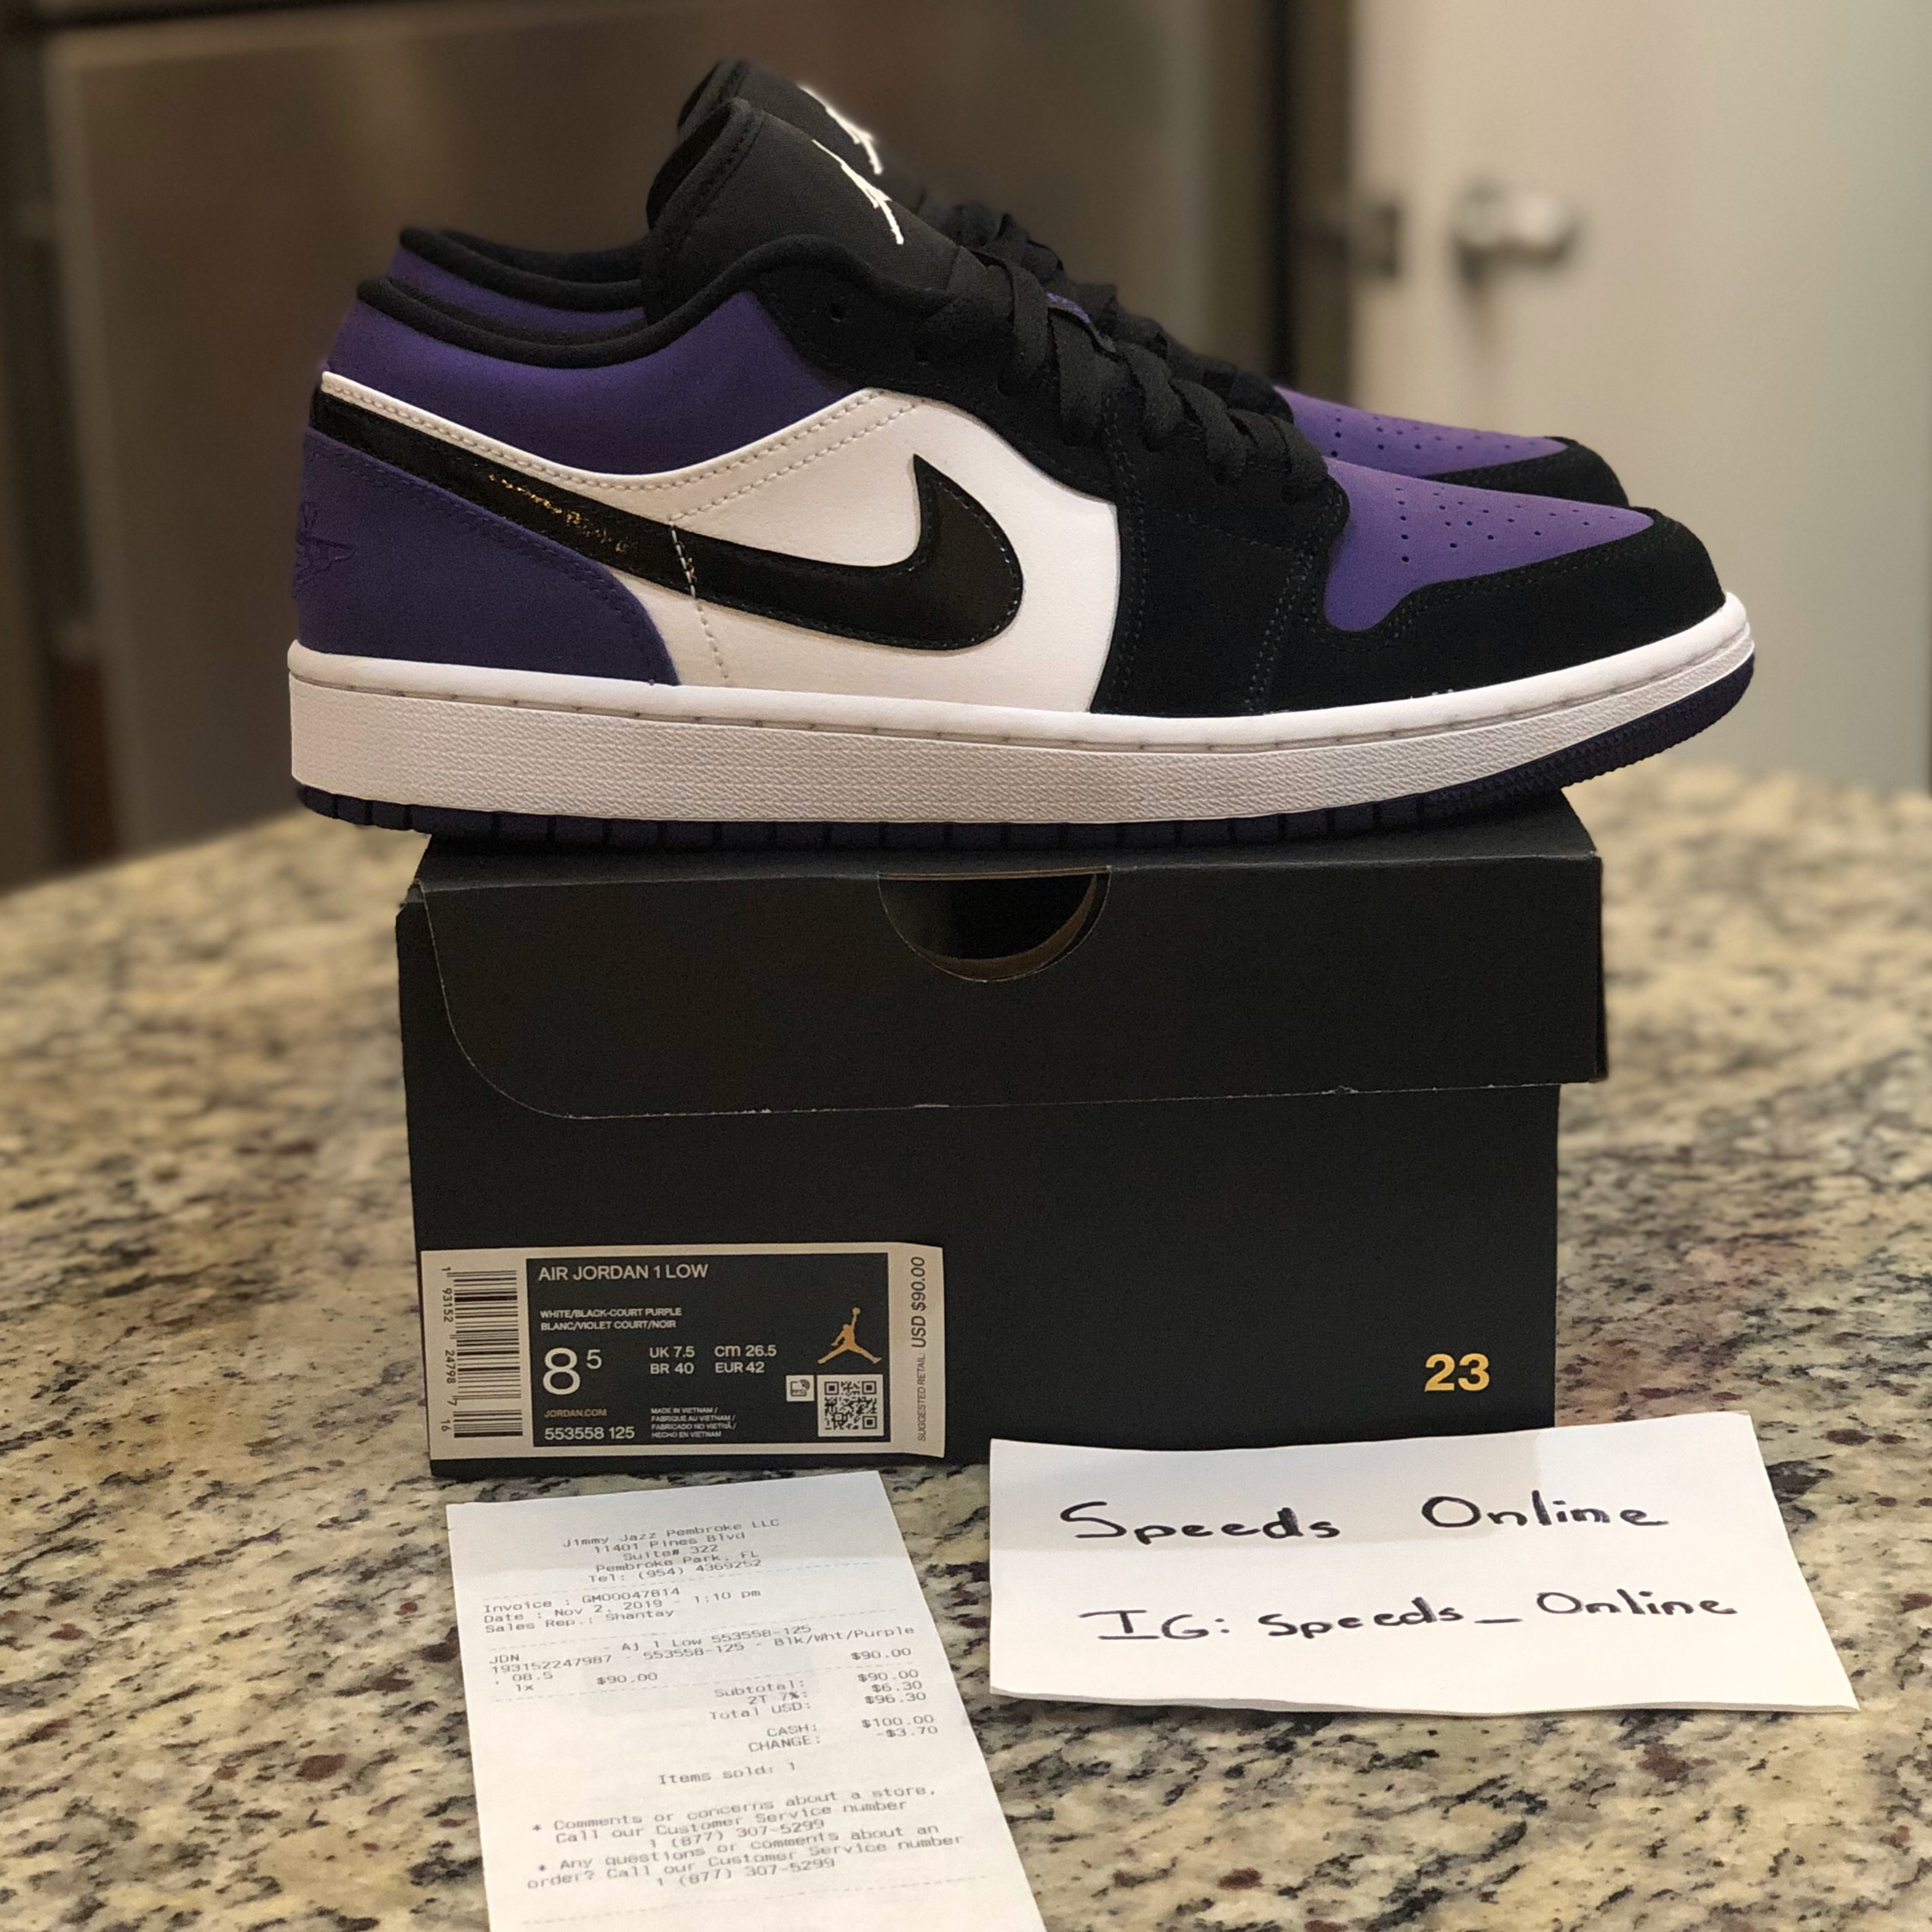 Jordan 1 Low Black Court Purple Turbo Green (GS)